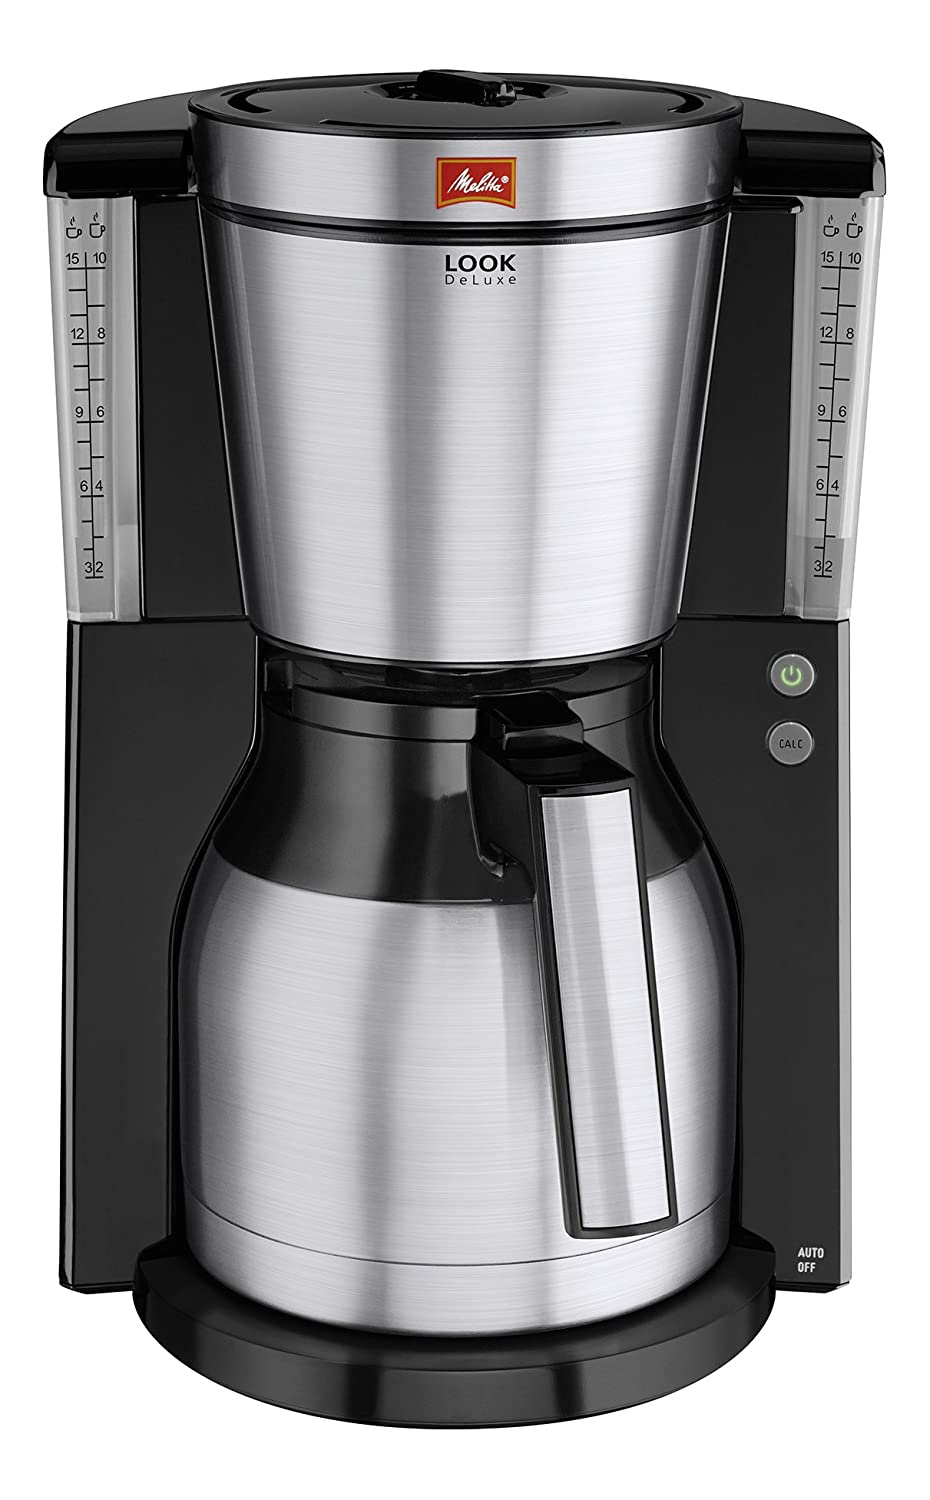 Aroma Selector 1011-14 Melitta Look IV Therm DeLuxe Black//Brushed Steel Filter Coffee Machine with Insulated Jug